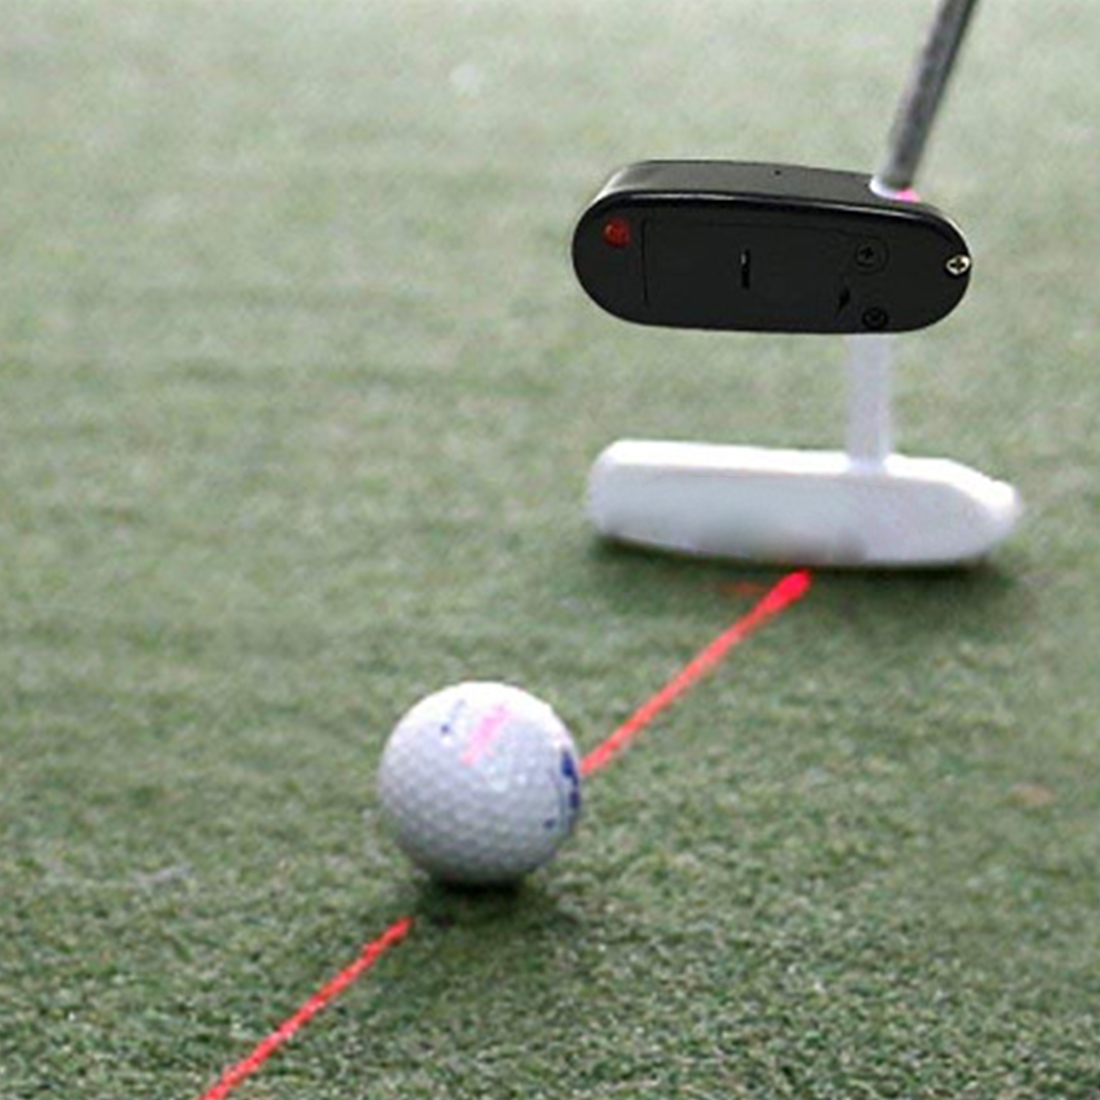 New Golf Putter Laser Pointer Putting Training Aim Line Corrector Improve Aid Tool Golf Learning Practice Accessories